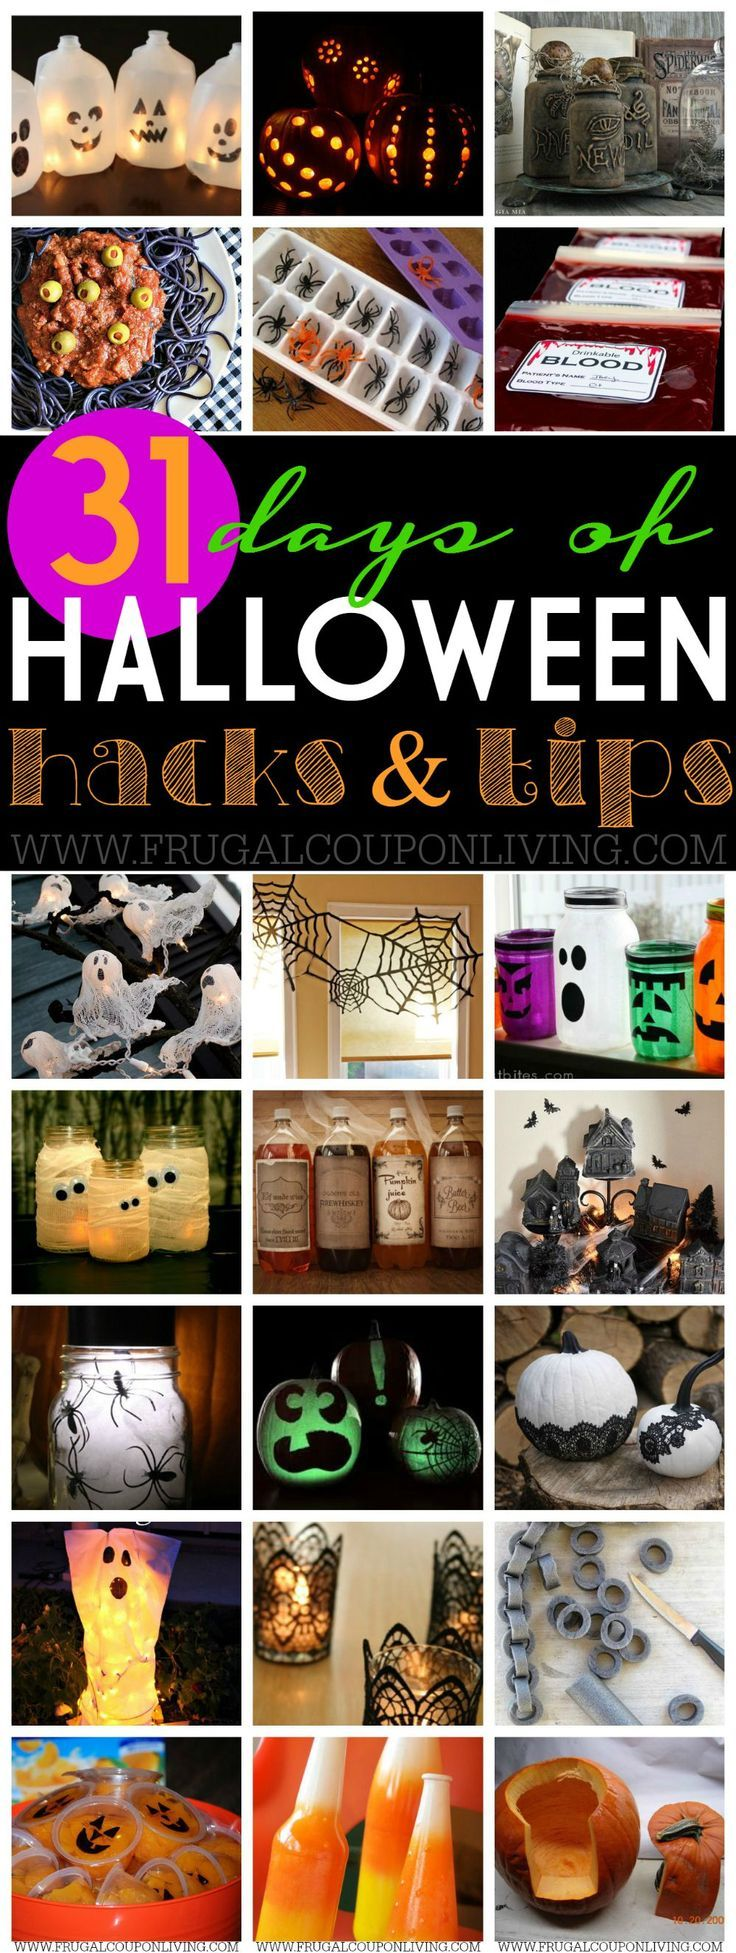 31 Days of Halloween Hacks & Tips on Frugal Coupon Living. Last minute decoratio...